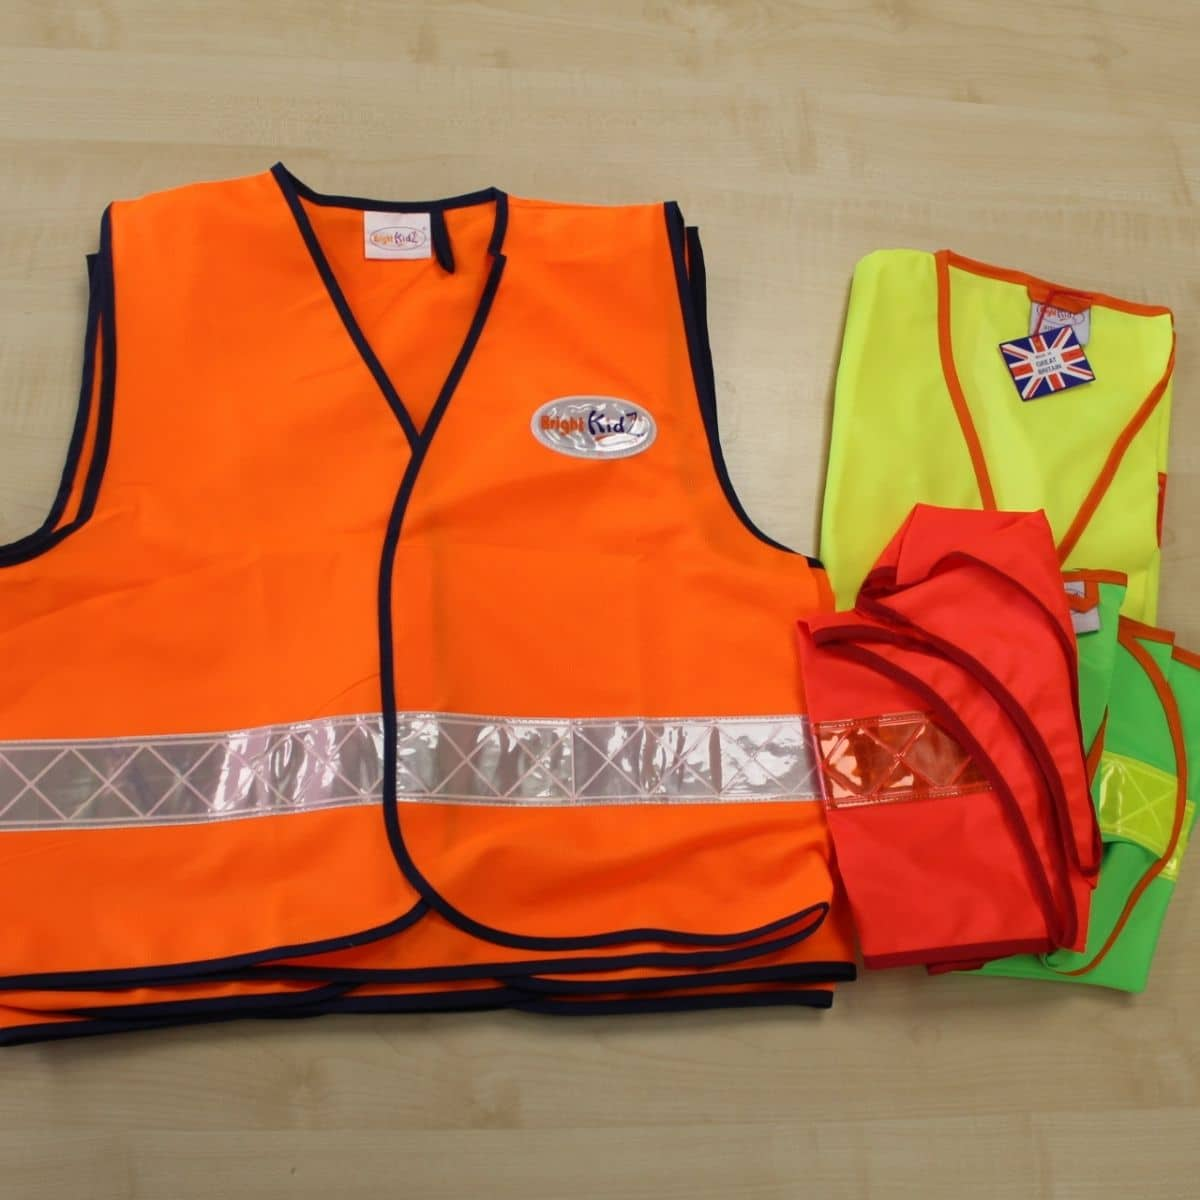 Pile of Hi Vis waistcoats in orange, red, green and yellow